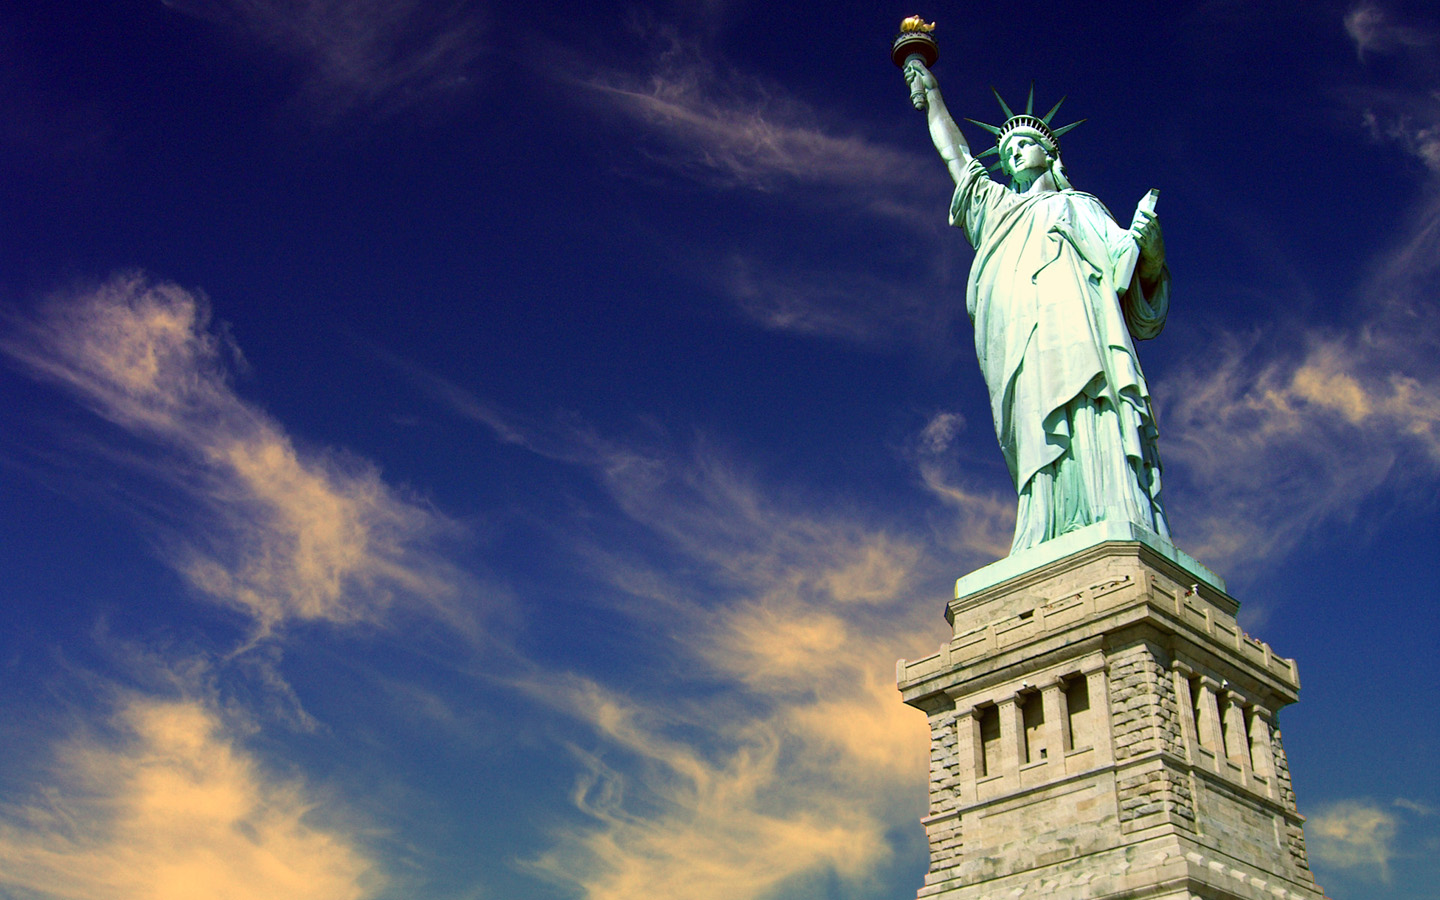 Statue Of Liberty HD Wallpapers  Backgrounds  Wallpaper  1440x900